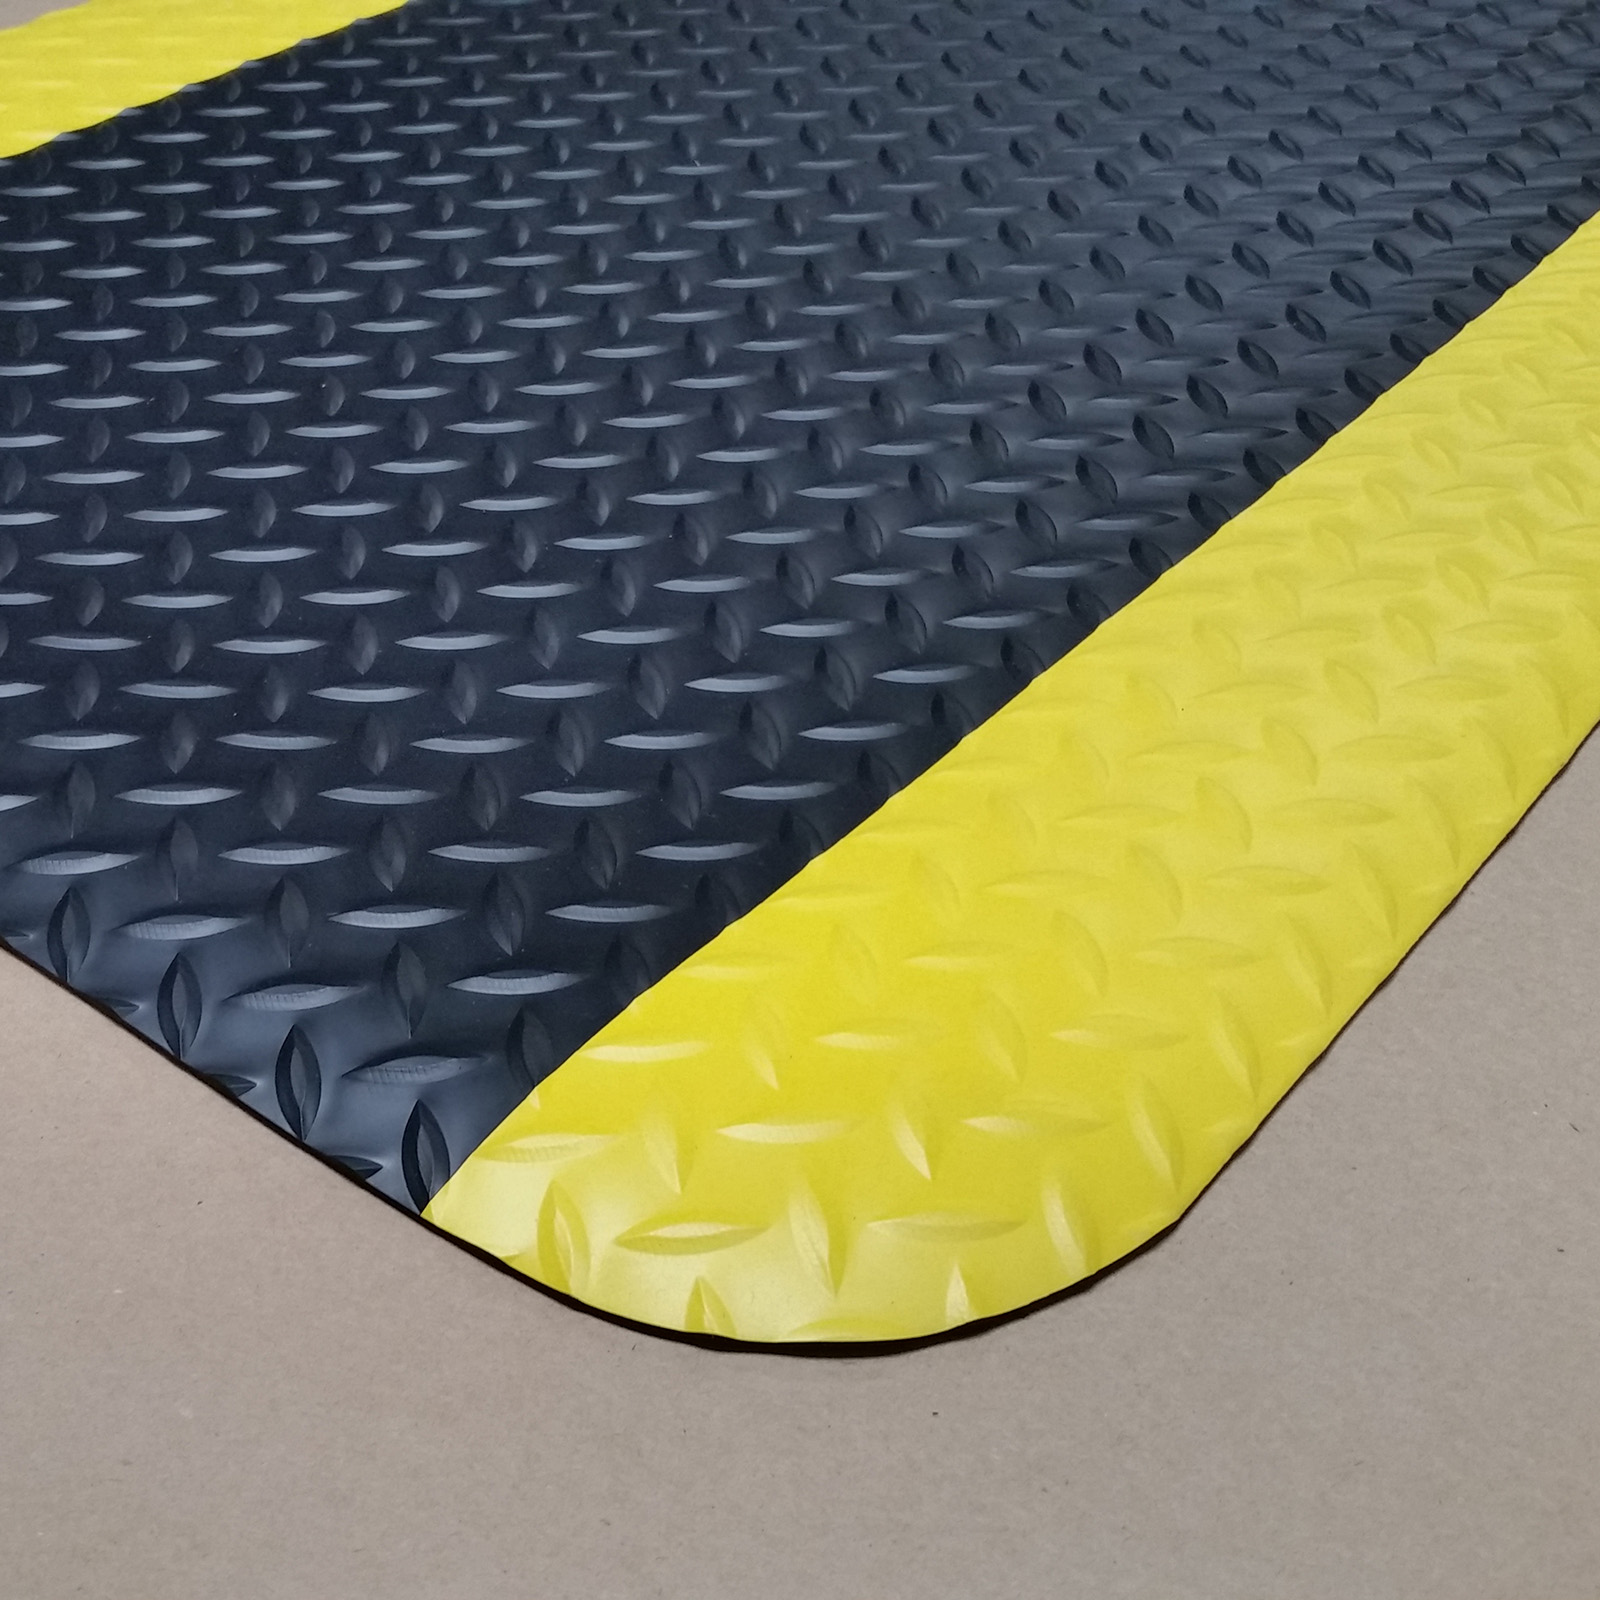 Cactus Mat 1053R-4 floor mat, anti-fatigue